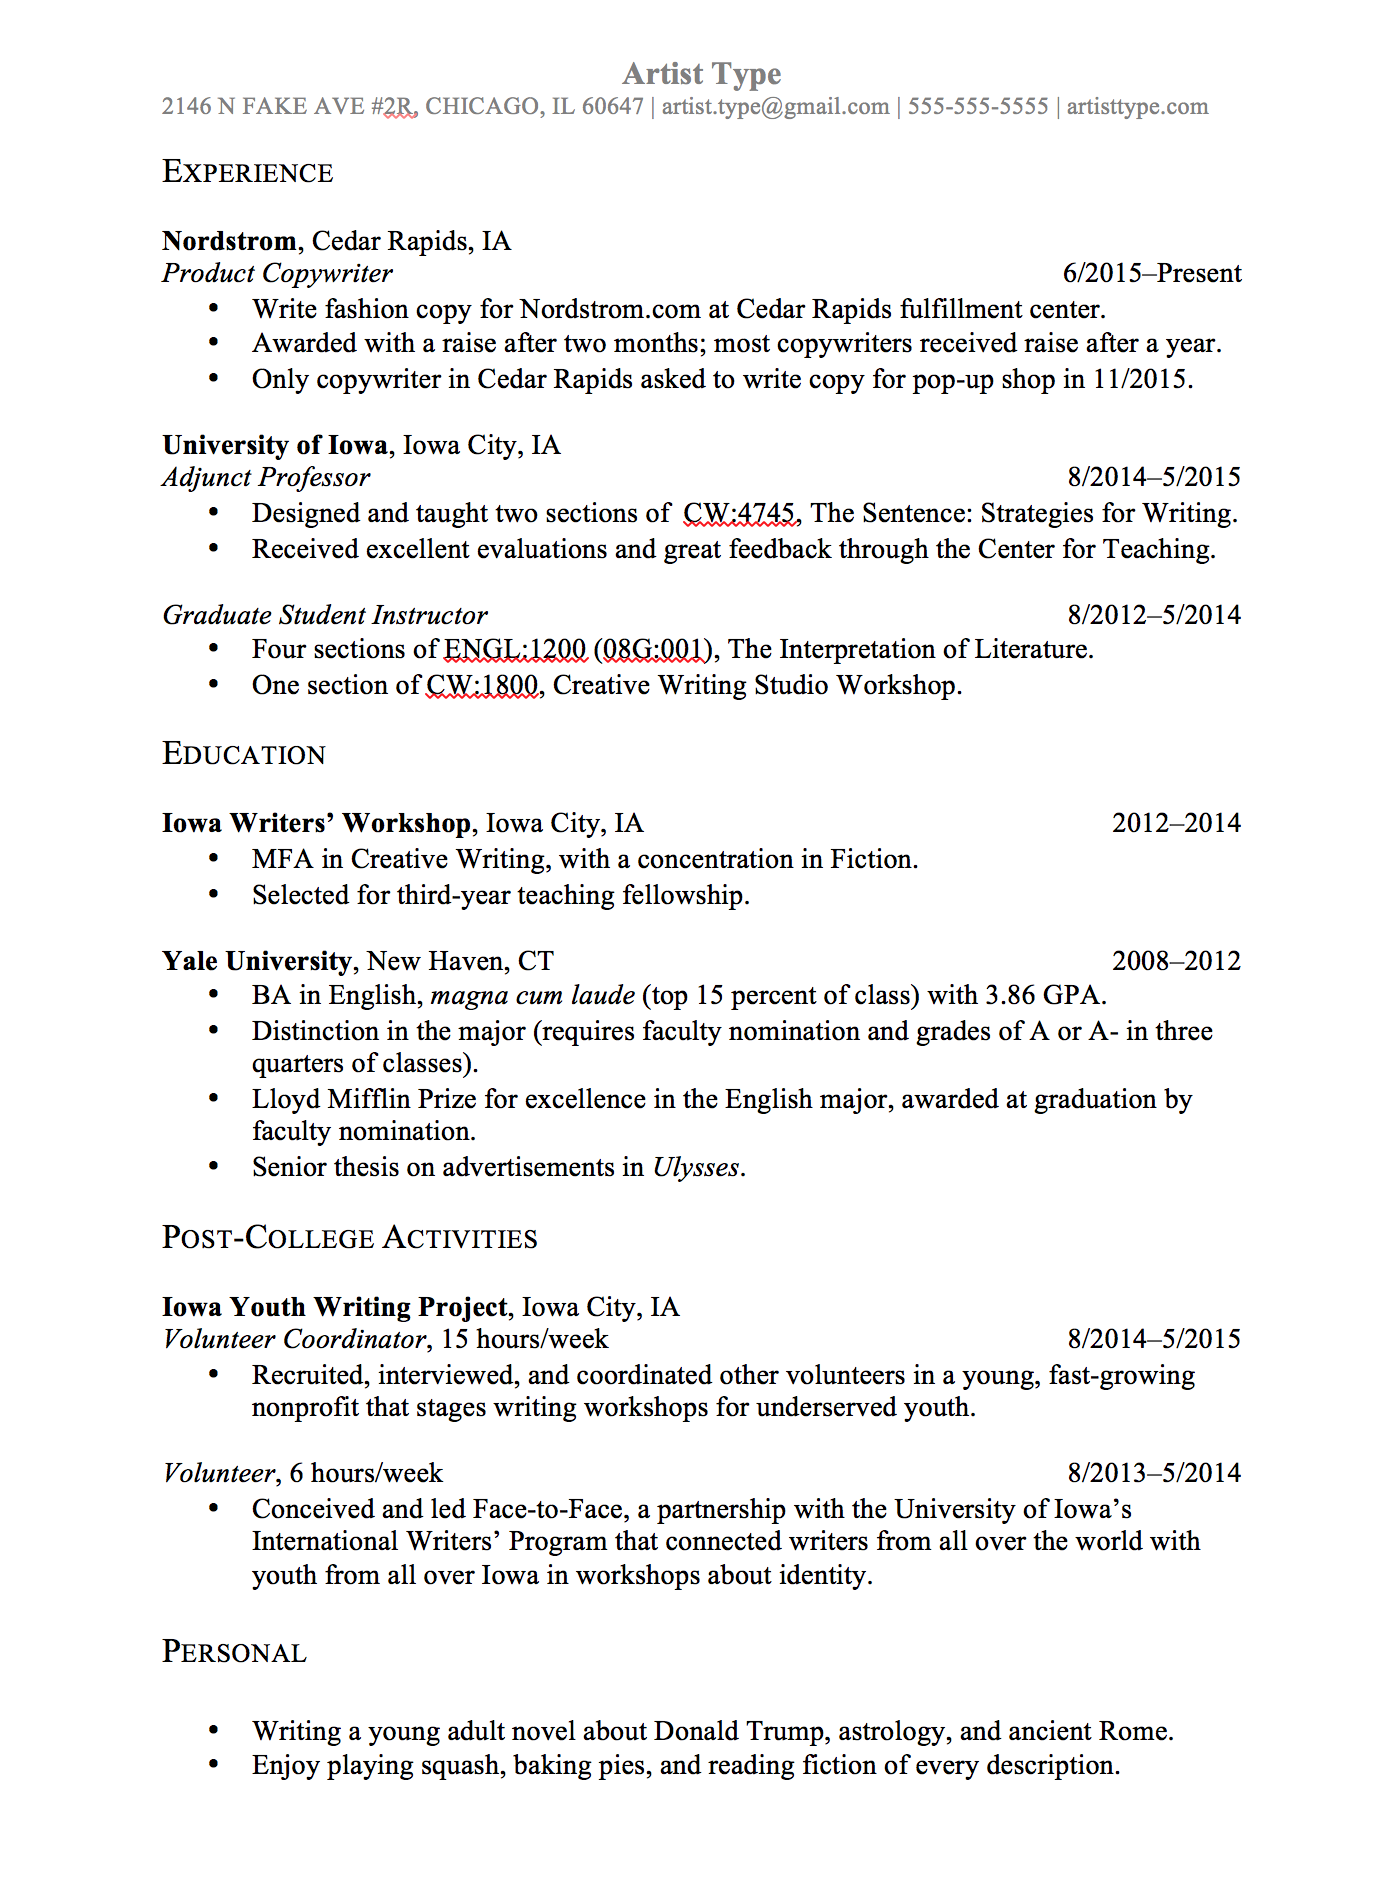 Sample Resume And Template 7sage Admissions